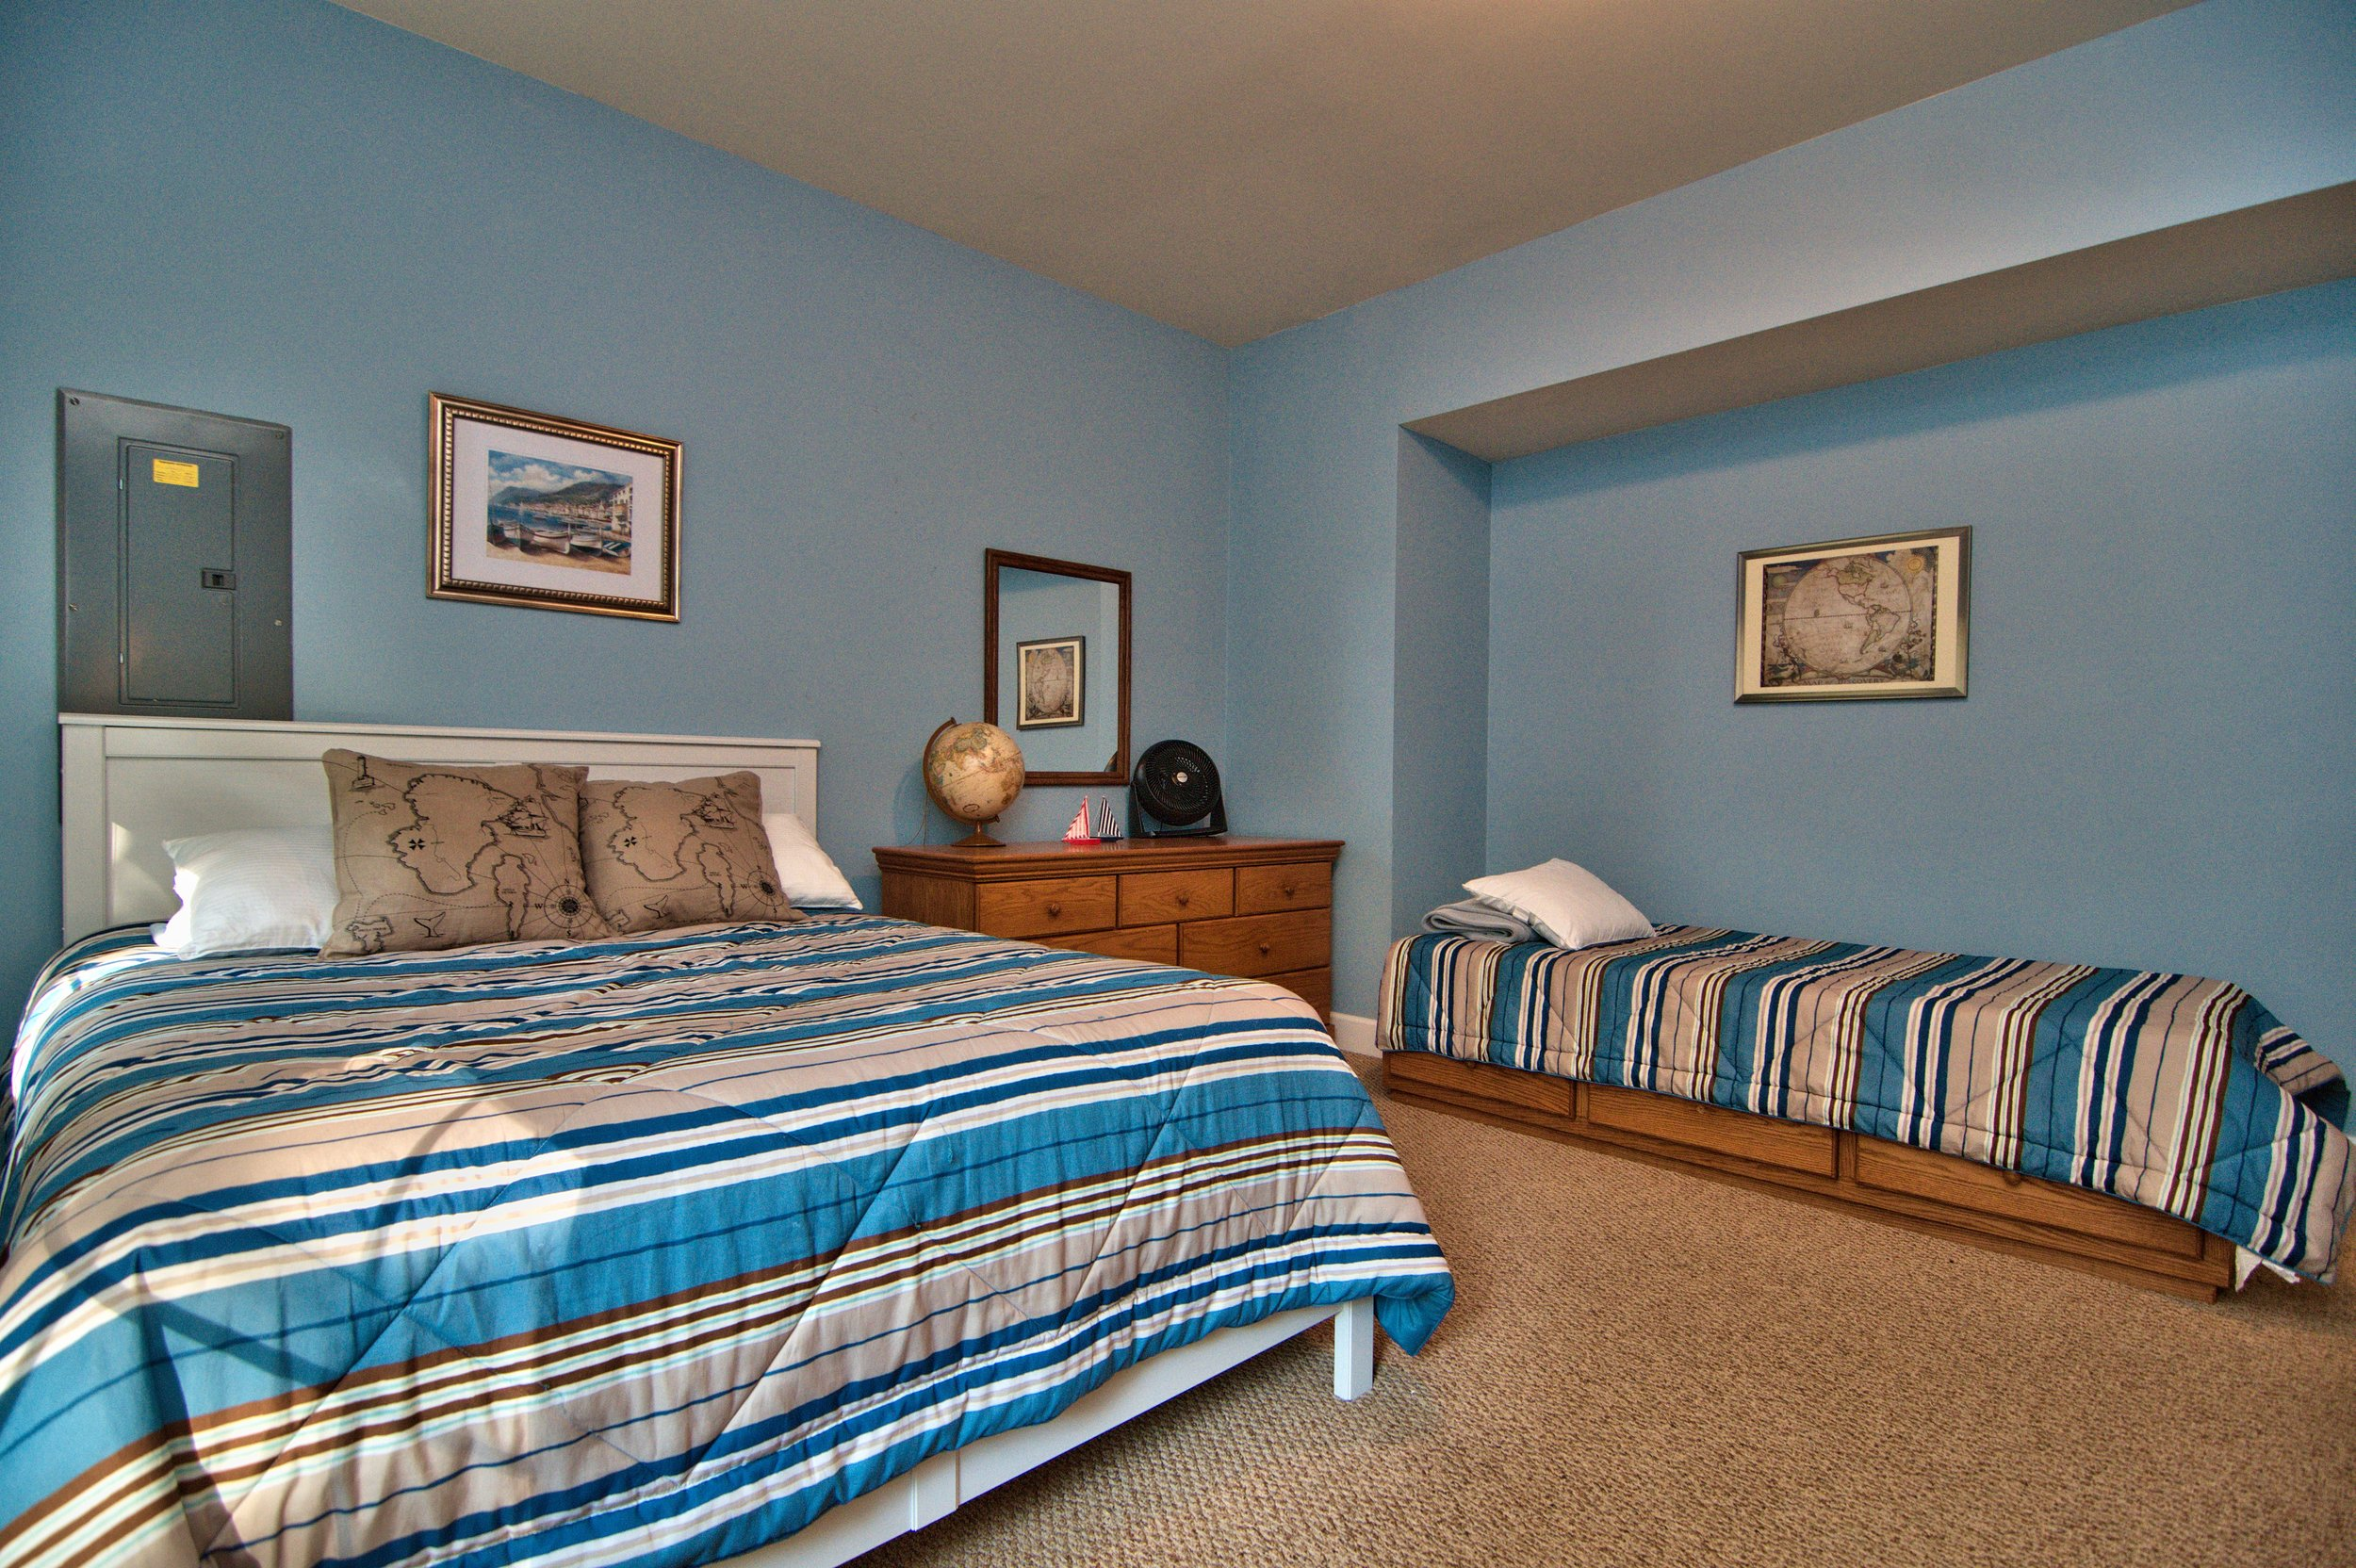 Lower Level Bedroom 1 View 3.jpg